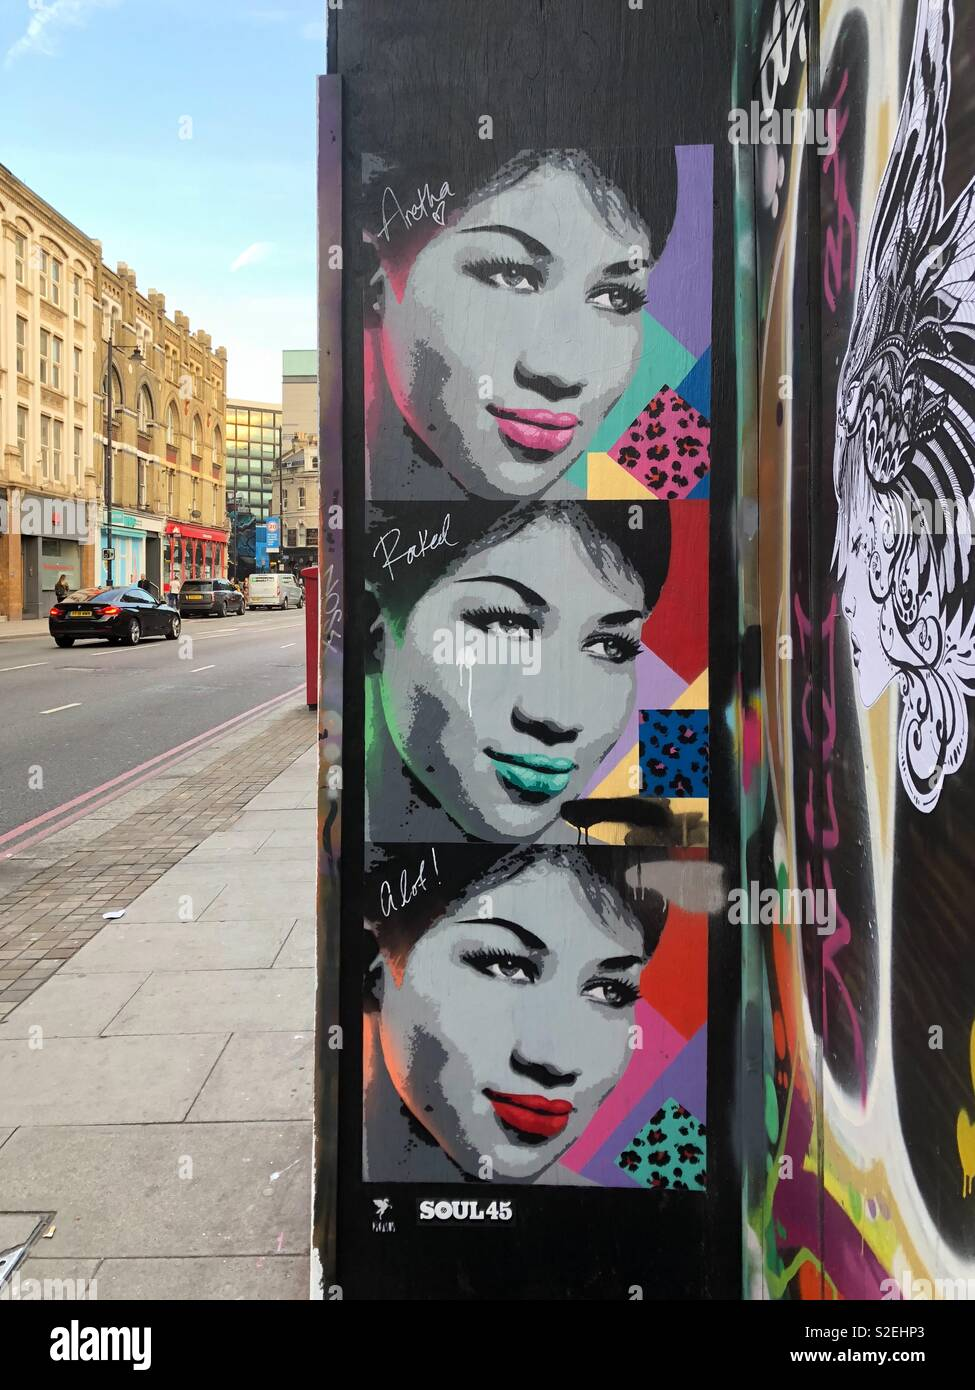 Icona Aretha Franklin pop art style graffiti in Hoxton, Londra, Inghilterra. Foto Stock